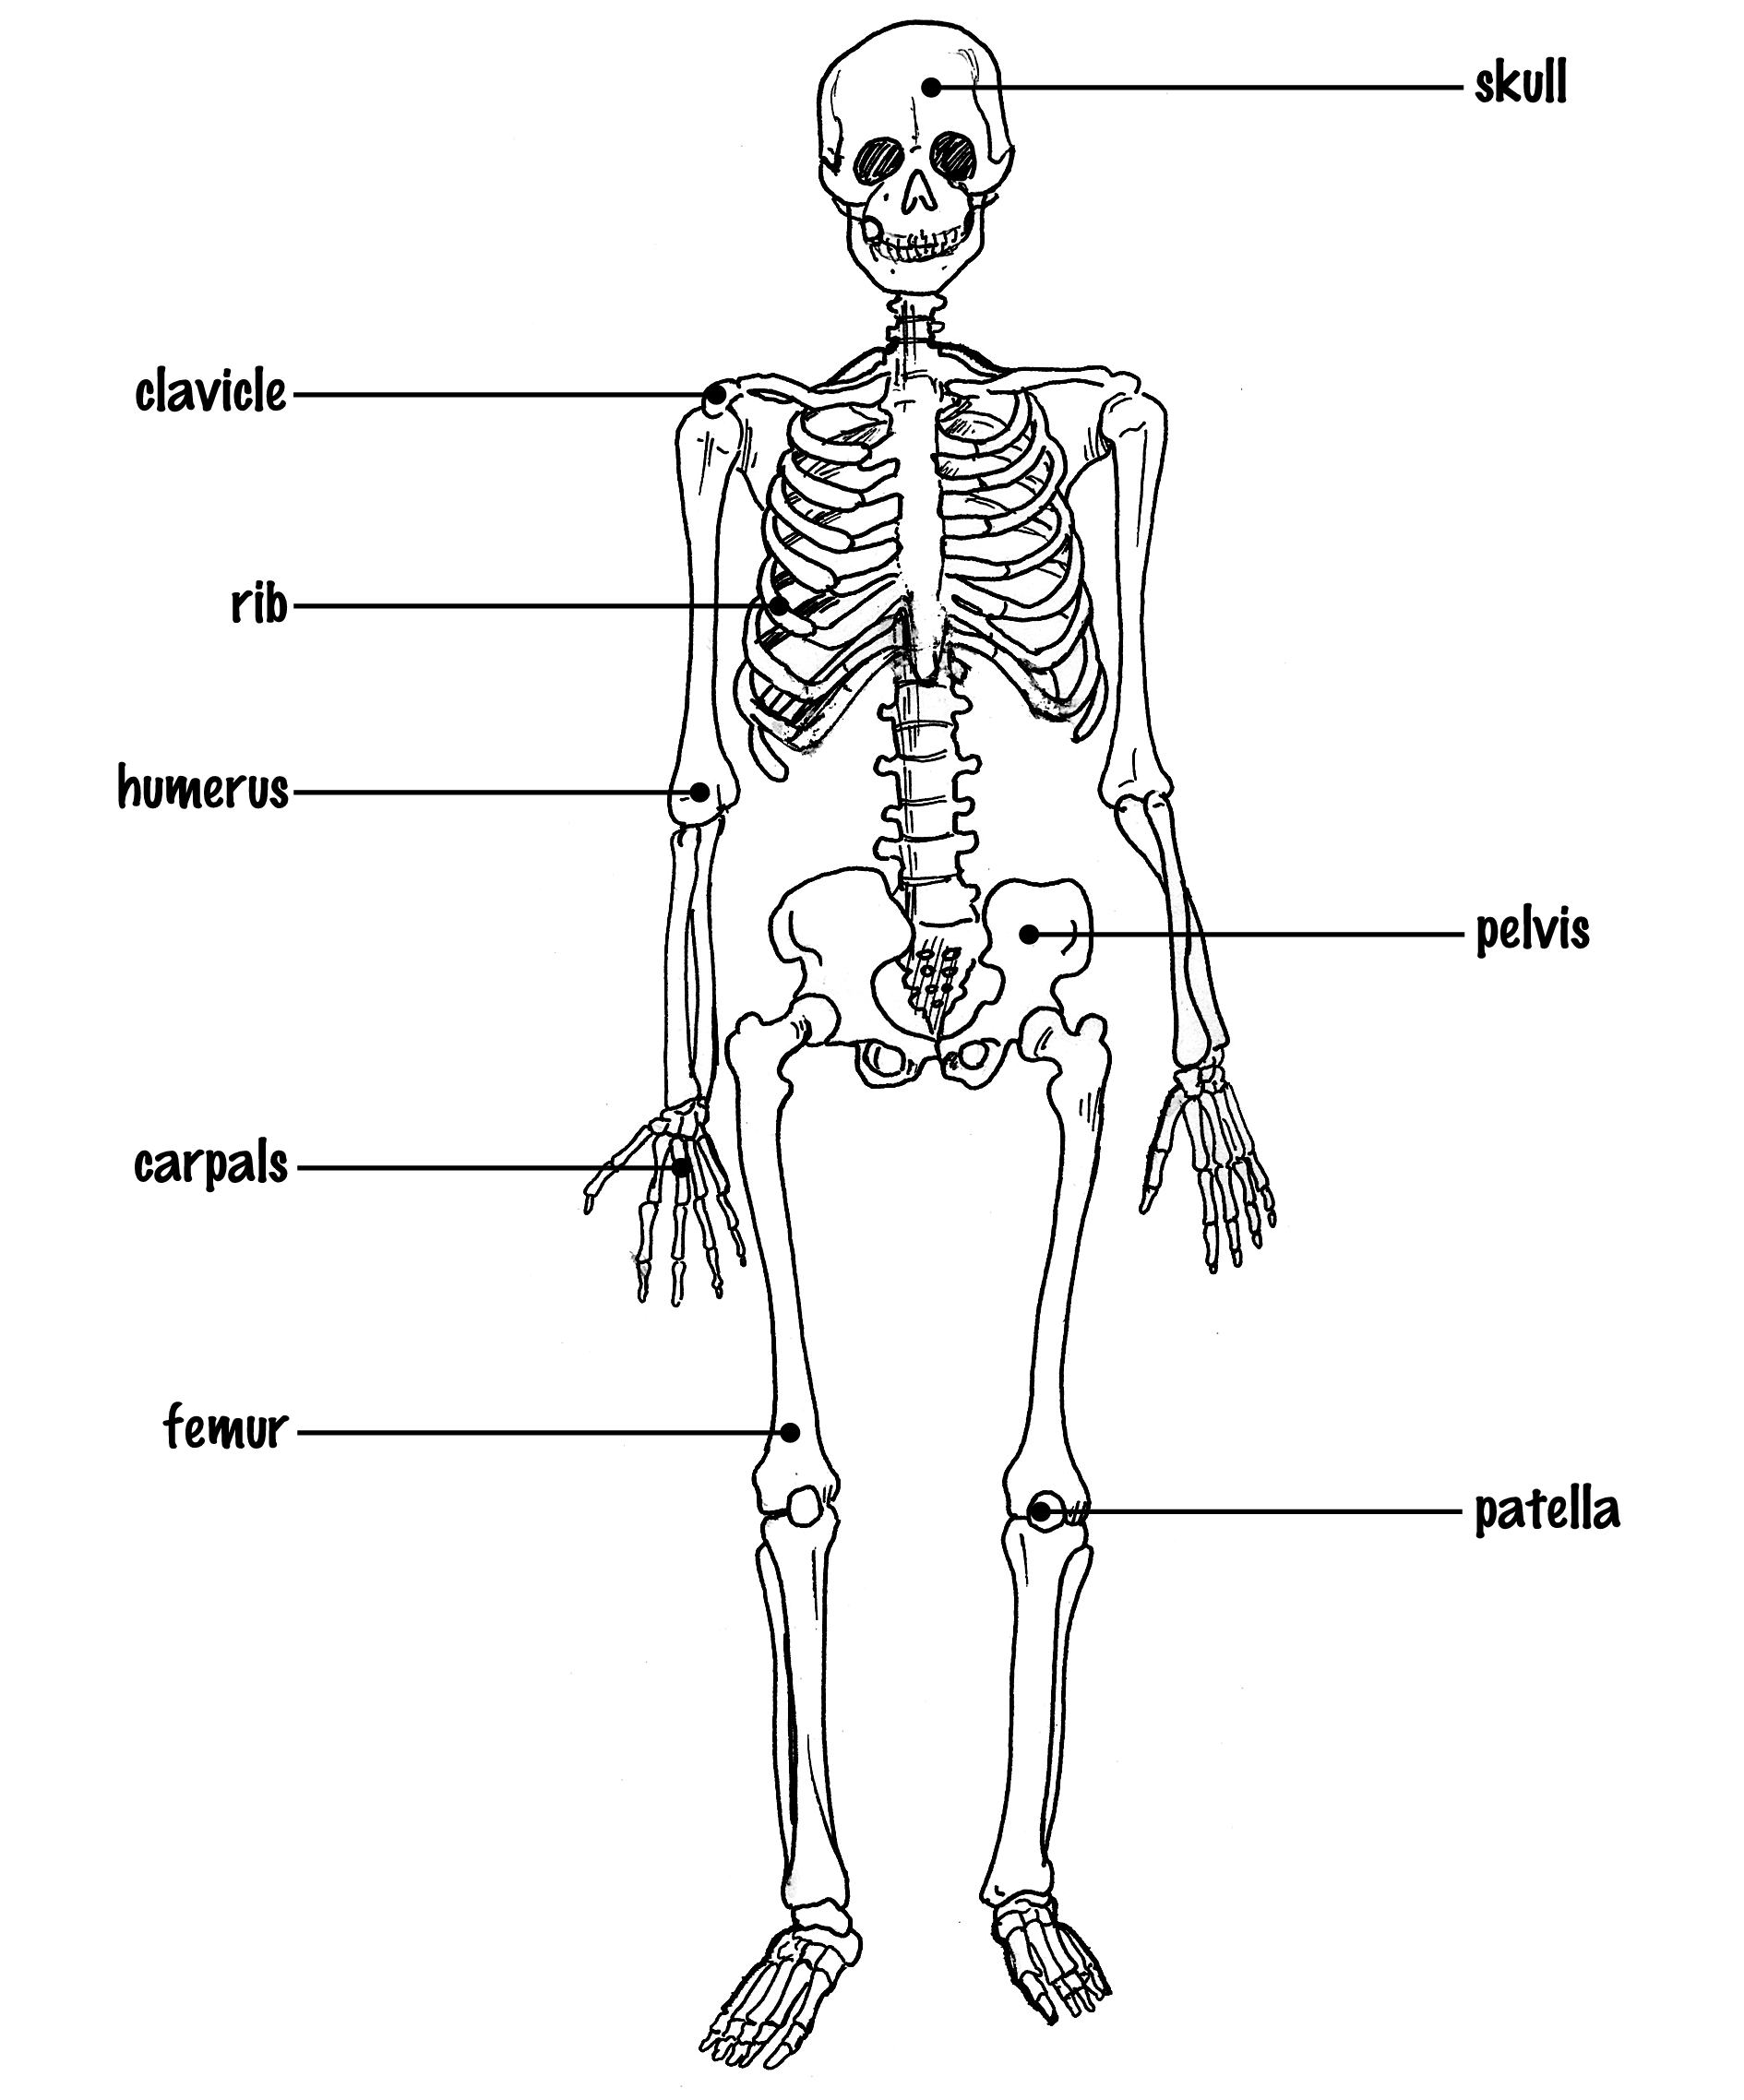 a human skeleton diagram – lickclick, Skeleton